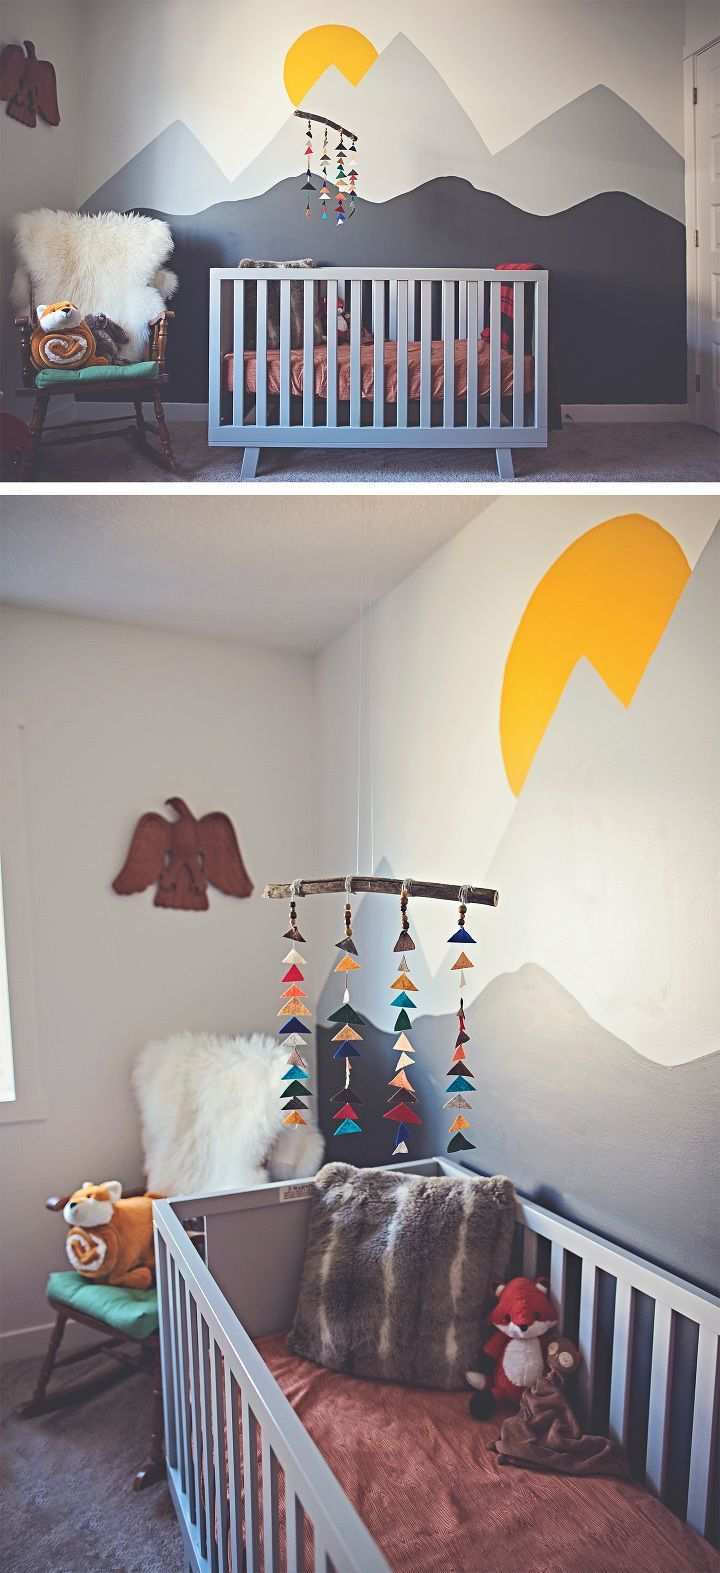 30 best nursery ideas for baby boy images on pinterest for Baby room mural ideas